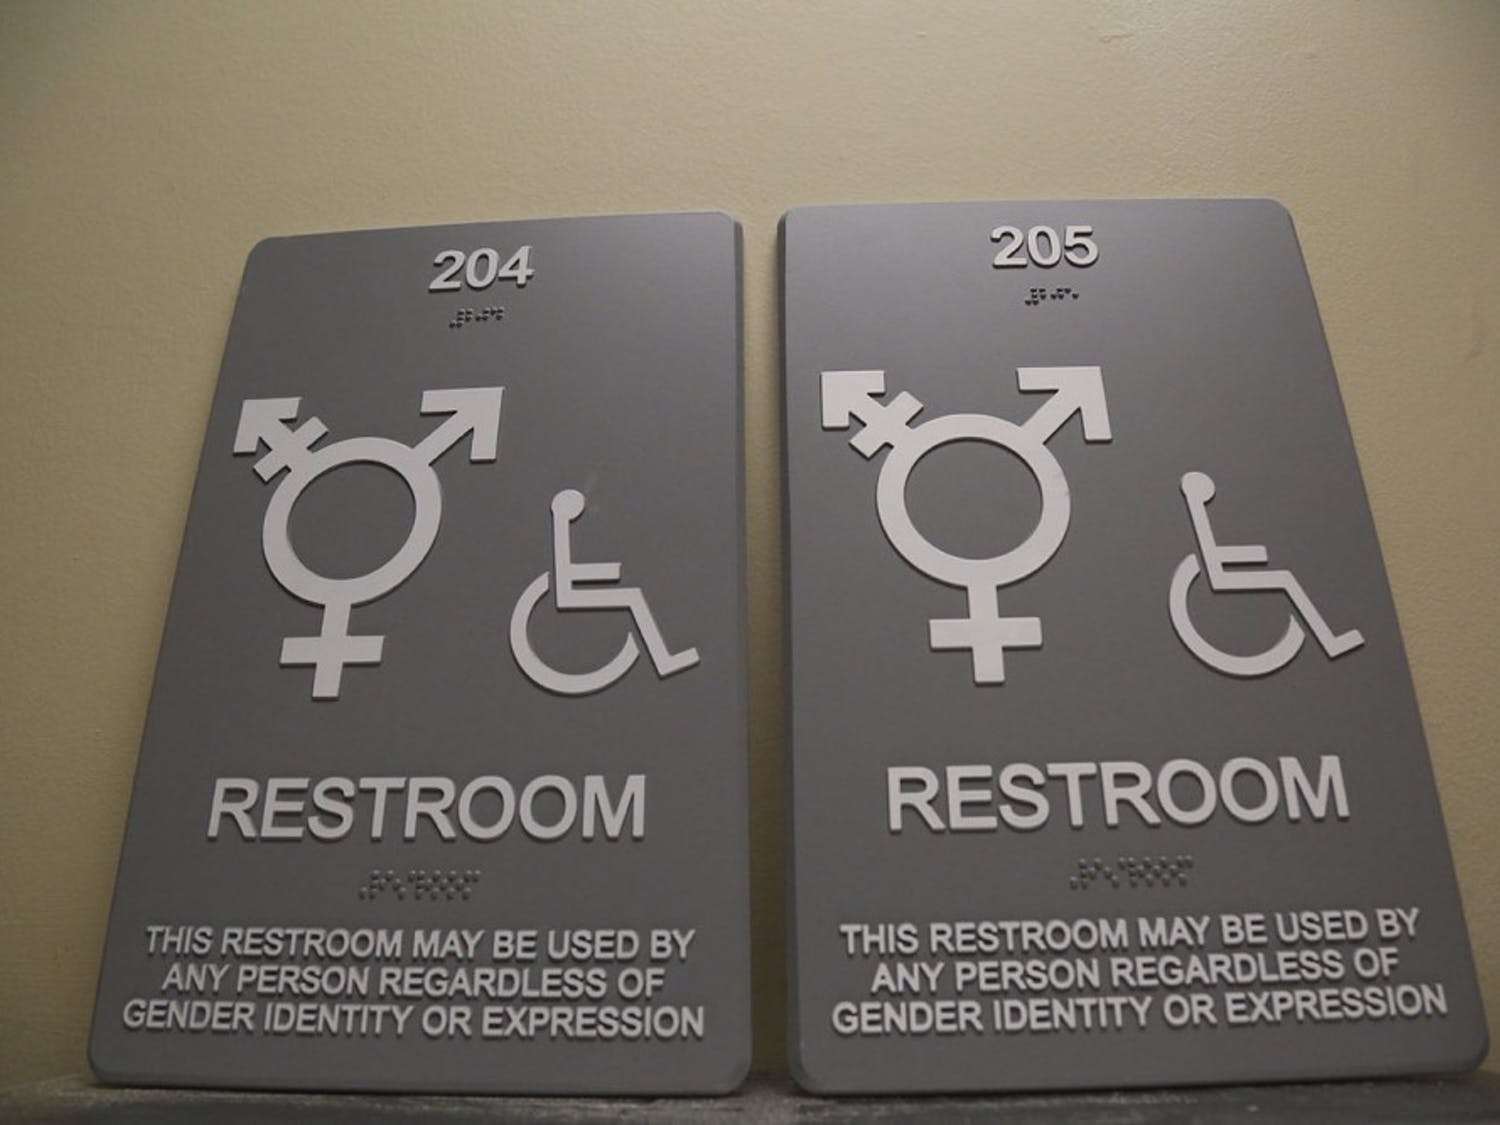 The Campus Y propped up the temporary gender neutral restroom signs on the fire extinguisher. They will replace the old ones with the new gender neutral signs in a few days.